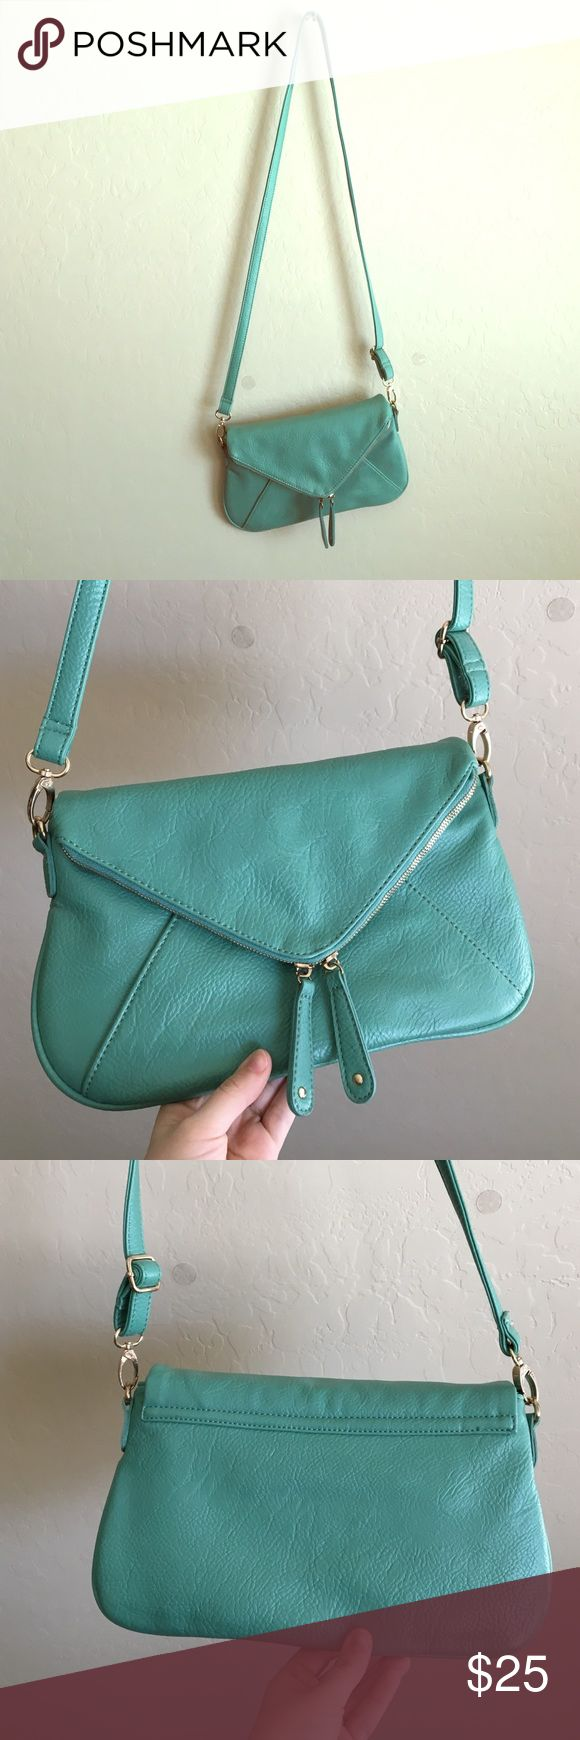 Cute light blue Urban Outfitters purse! Super cute, barely used. Small scuff from being hung on a purse hanger shown in last picture, other than that perfect condition. Kimchi Blue Bags